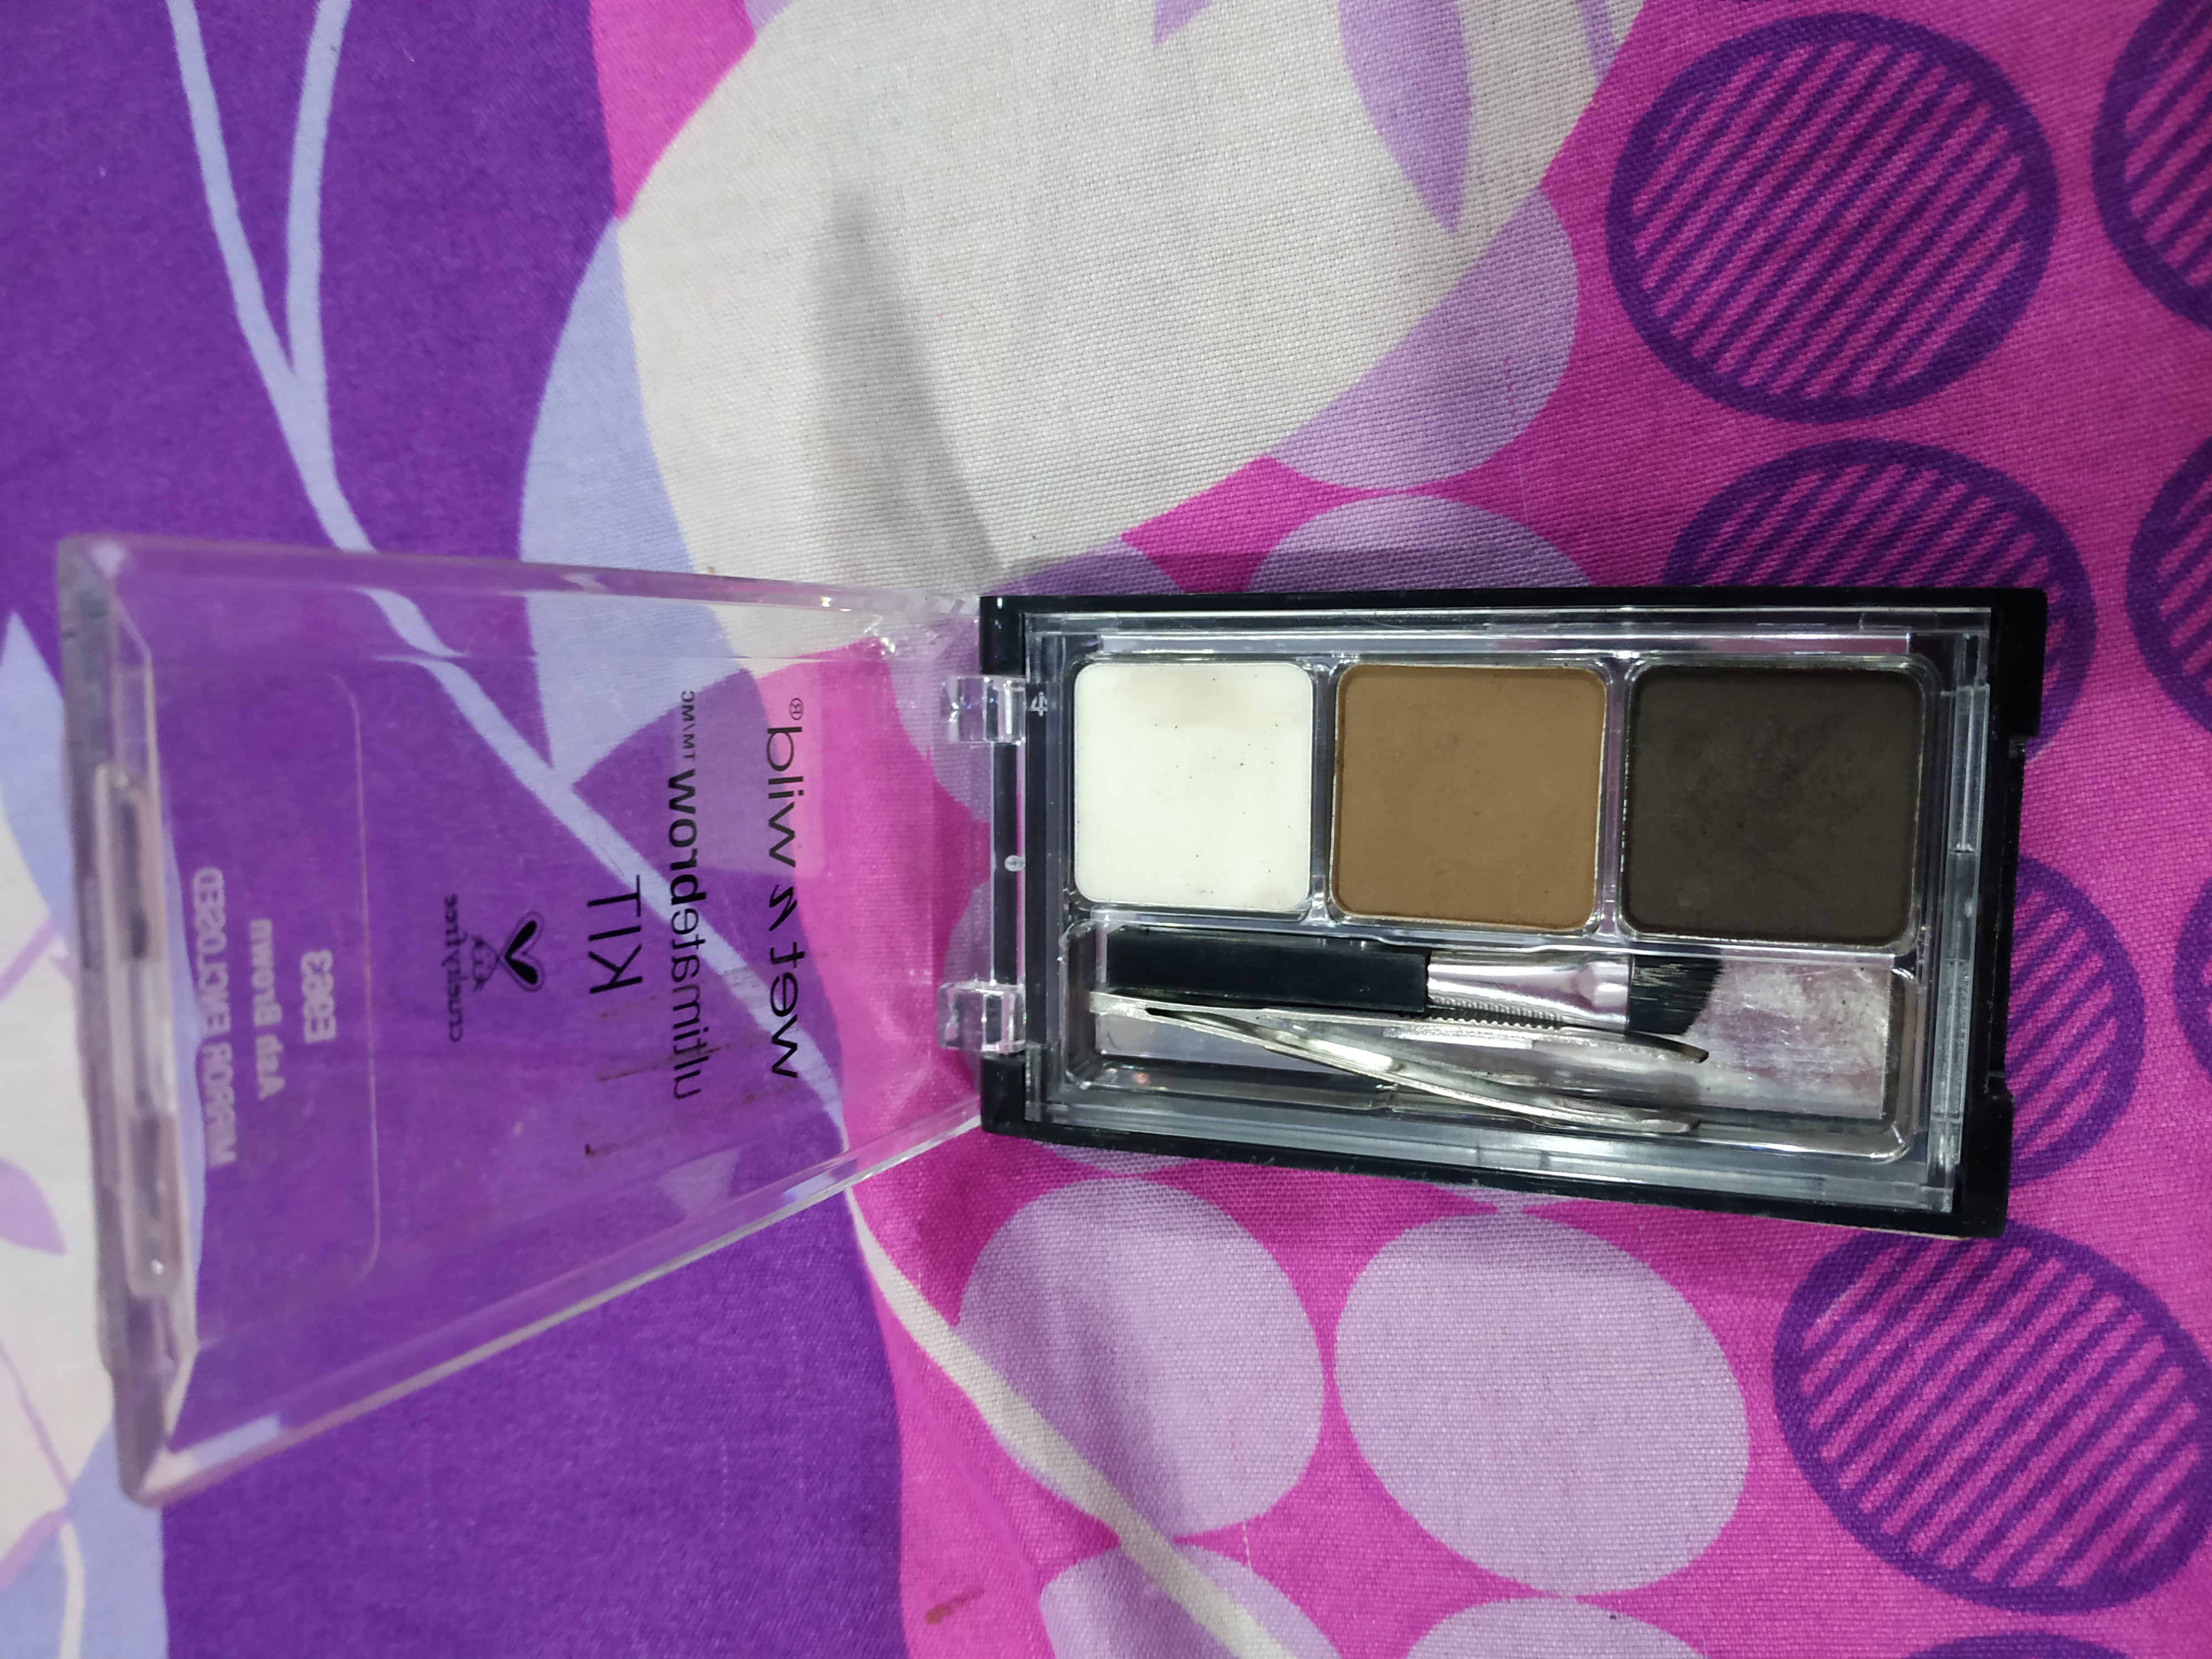 Wet N Wild Ultimate Brow Kit -Perfect brow kit..!-By nilofer